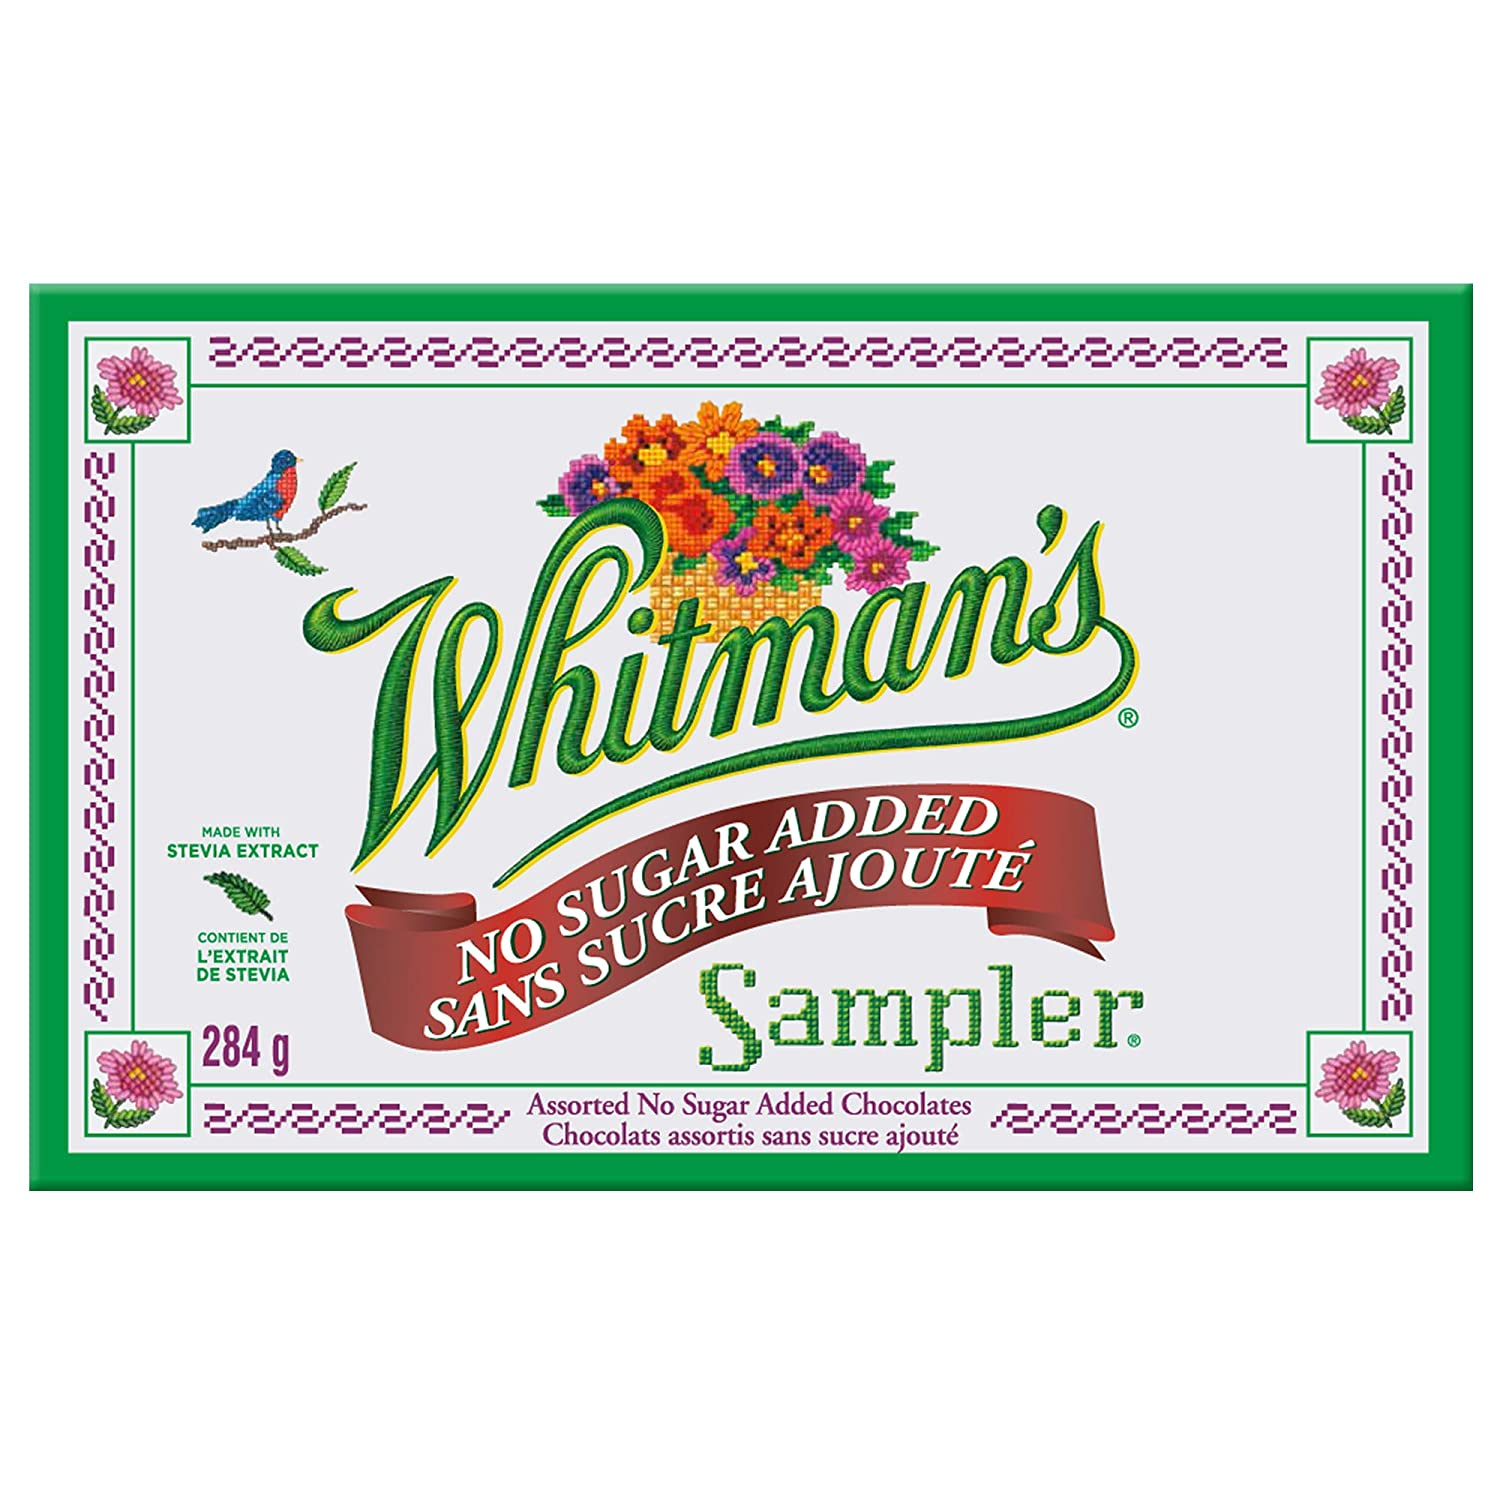 Whitman's Sampler Sugar Free, 10 oz. Box